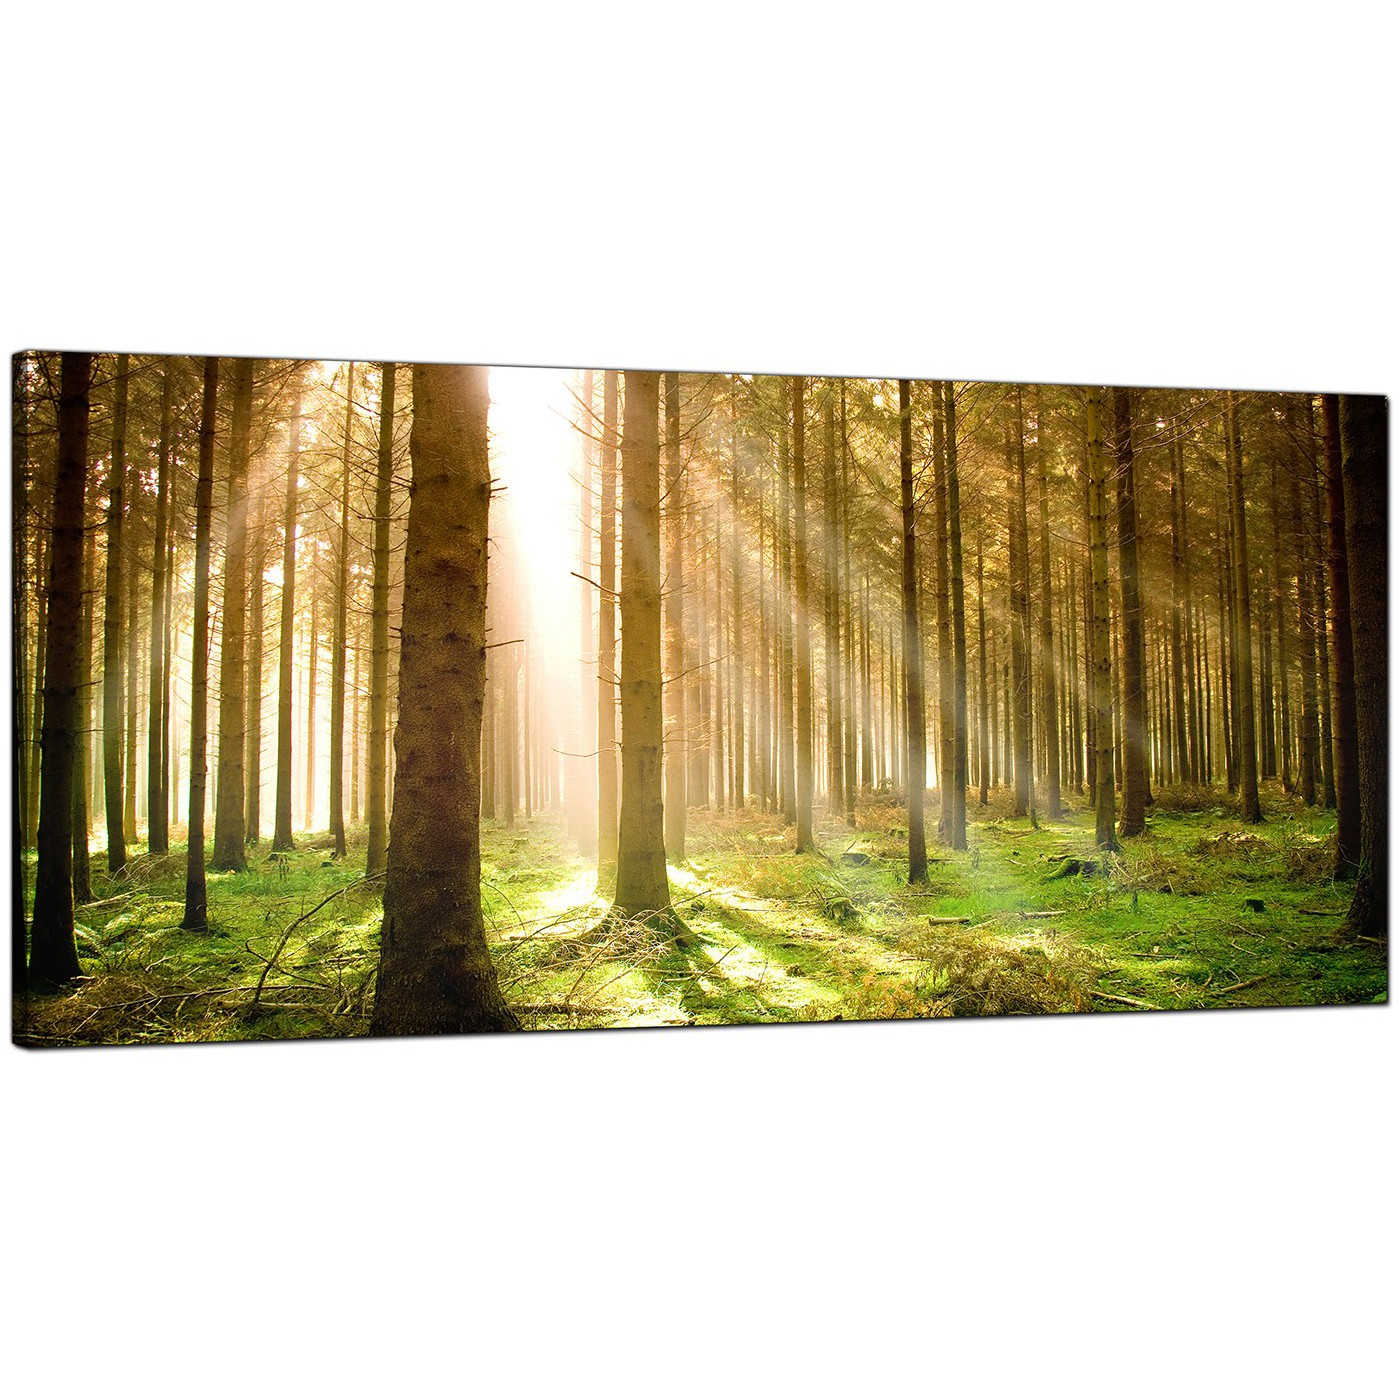 Canvas Prints of Forest Trees for your Dining Room